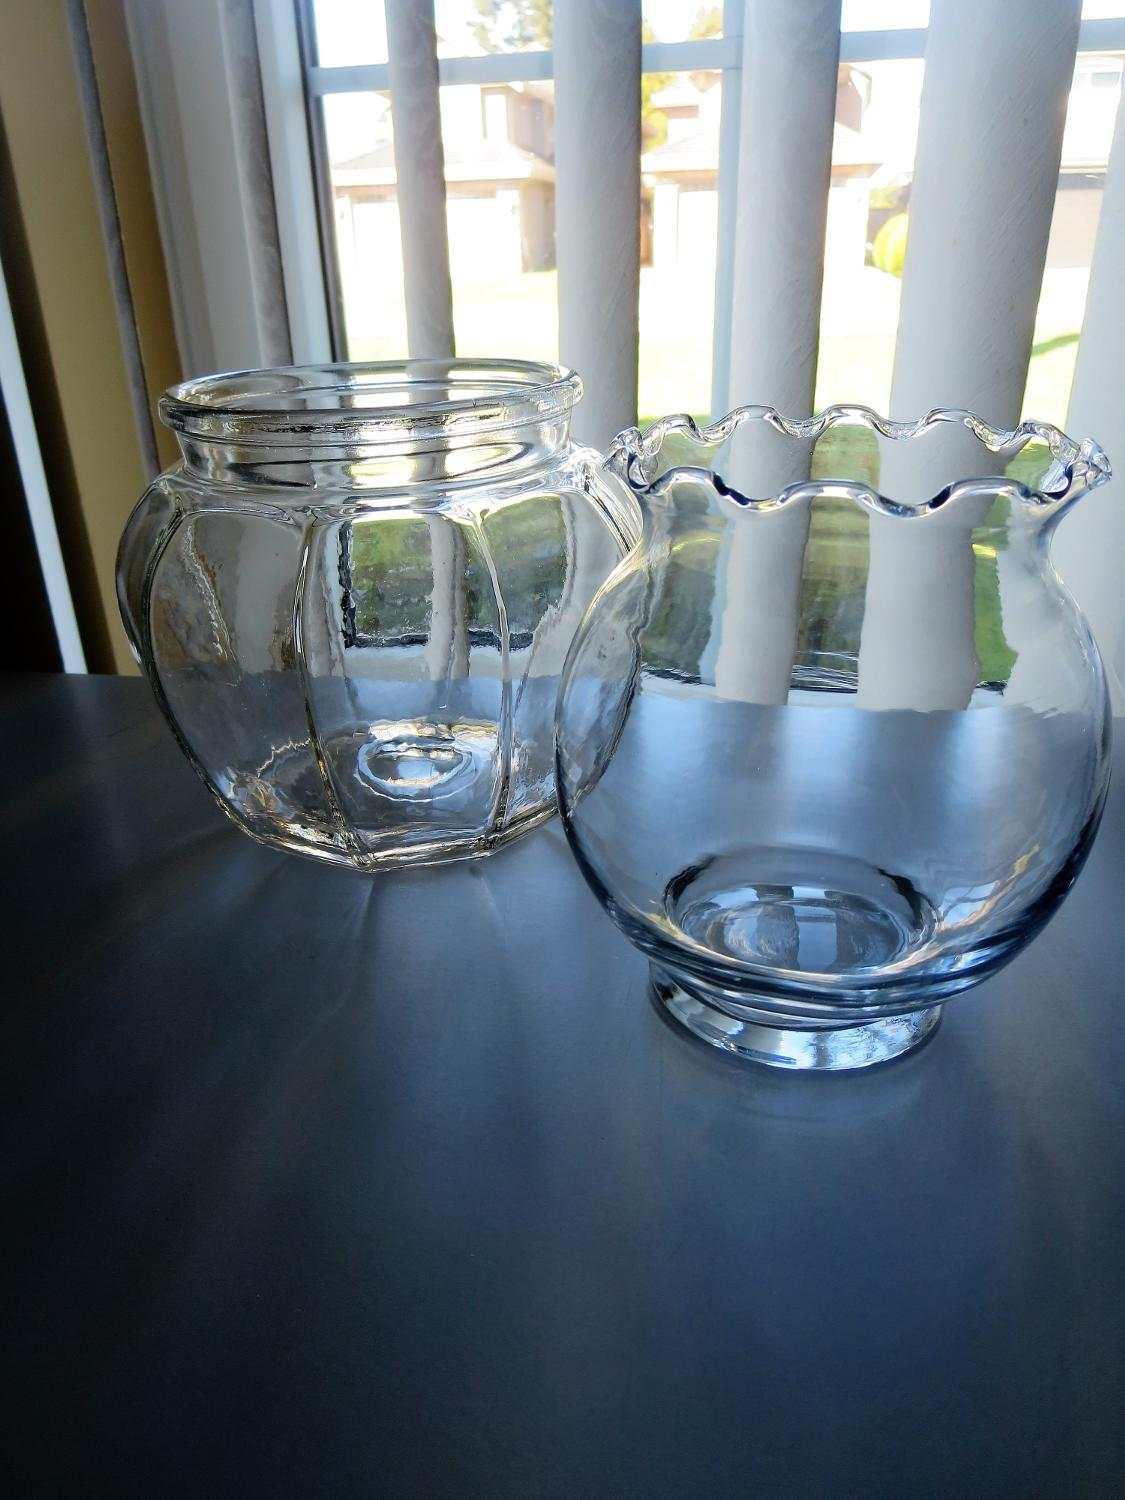 Best Euc 2 Vases Or Can Use For Candy Or Treats Left One Is Older Both Stand About 5 1 2 Inches